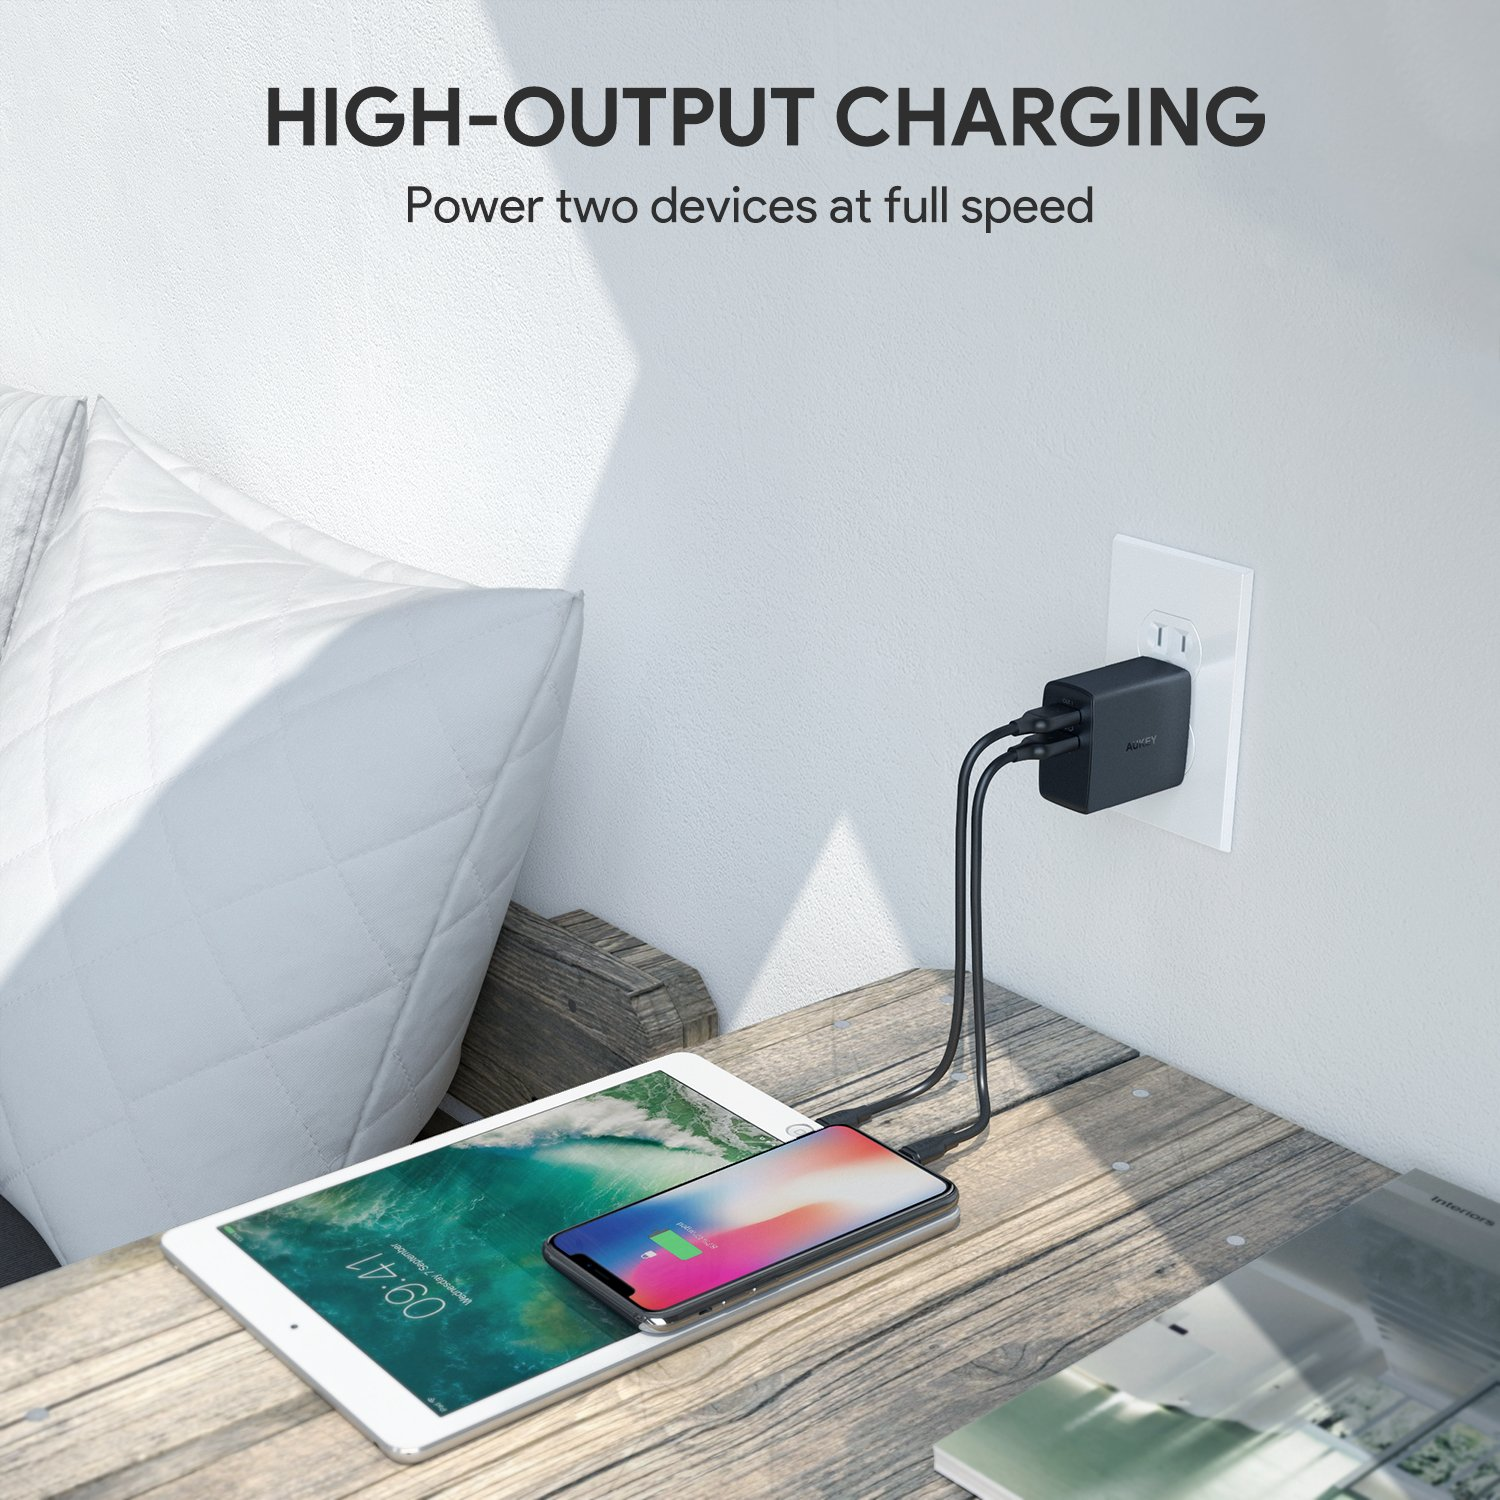 Aukey Usb Wall Charger Ultra Compact Dual Port 48a Pa U42 Amp 2 Aipower Output Foldable Plug Compatible Iphone Xs Max Xr Ipad Pro Air Mini 4